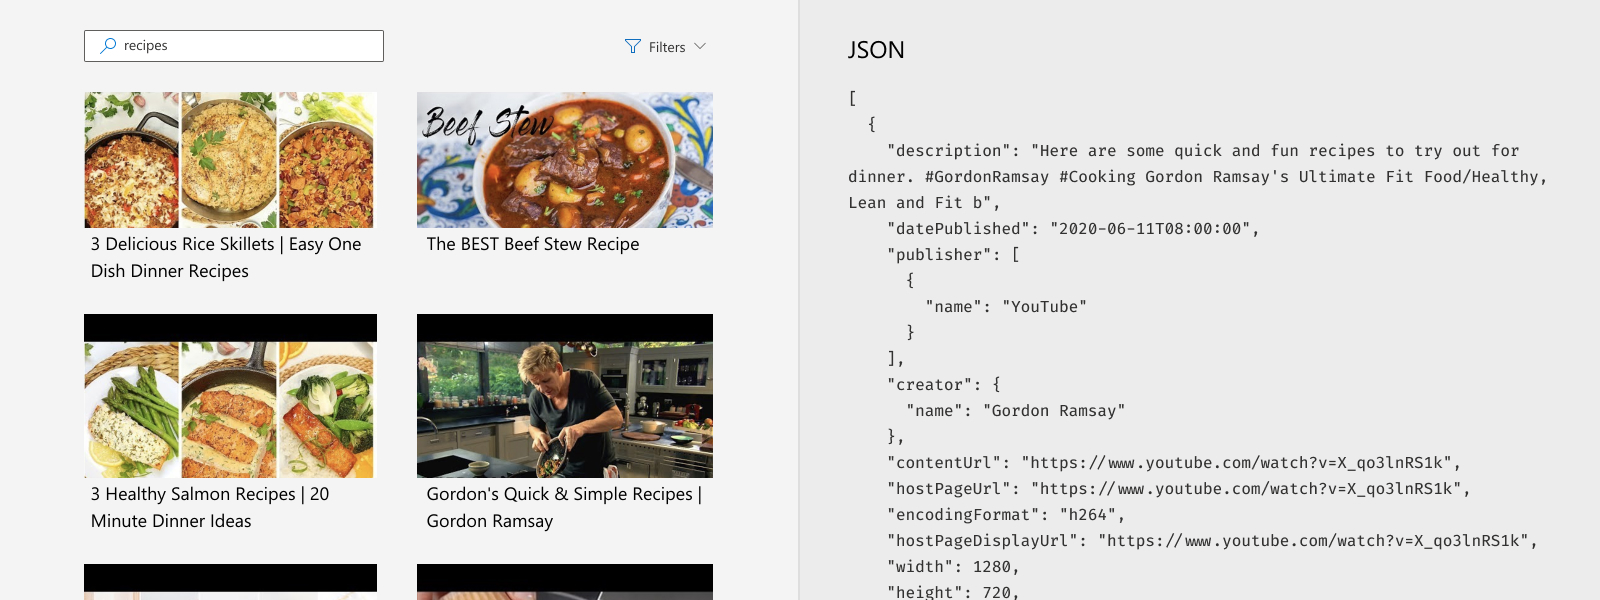 Illustrates a video search experience for recipes.